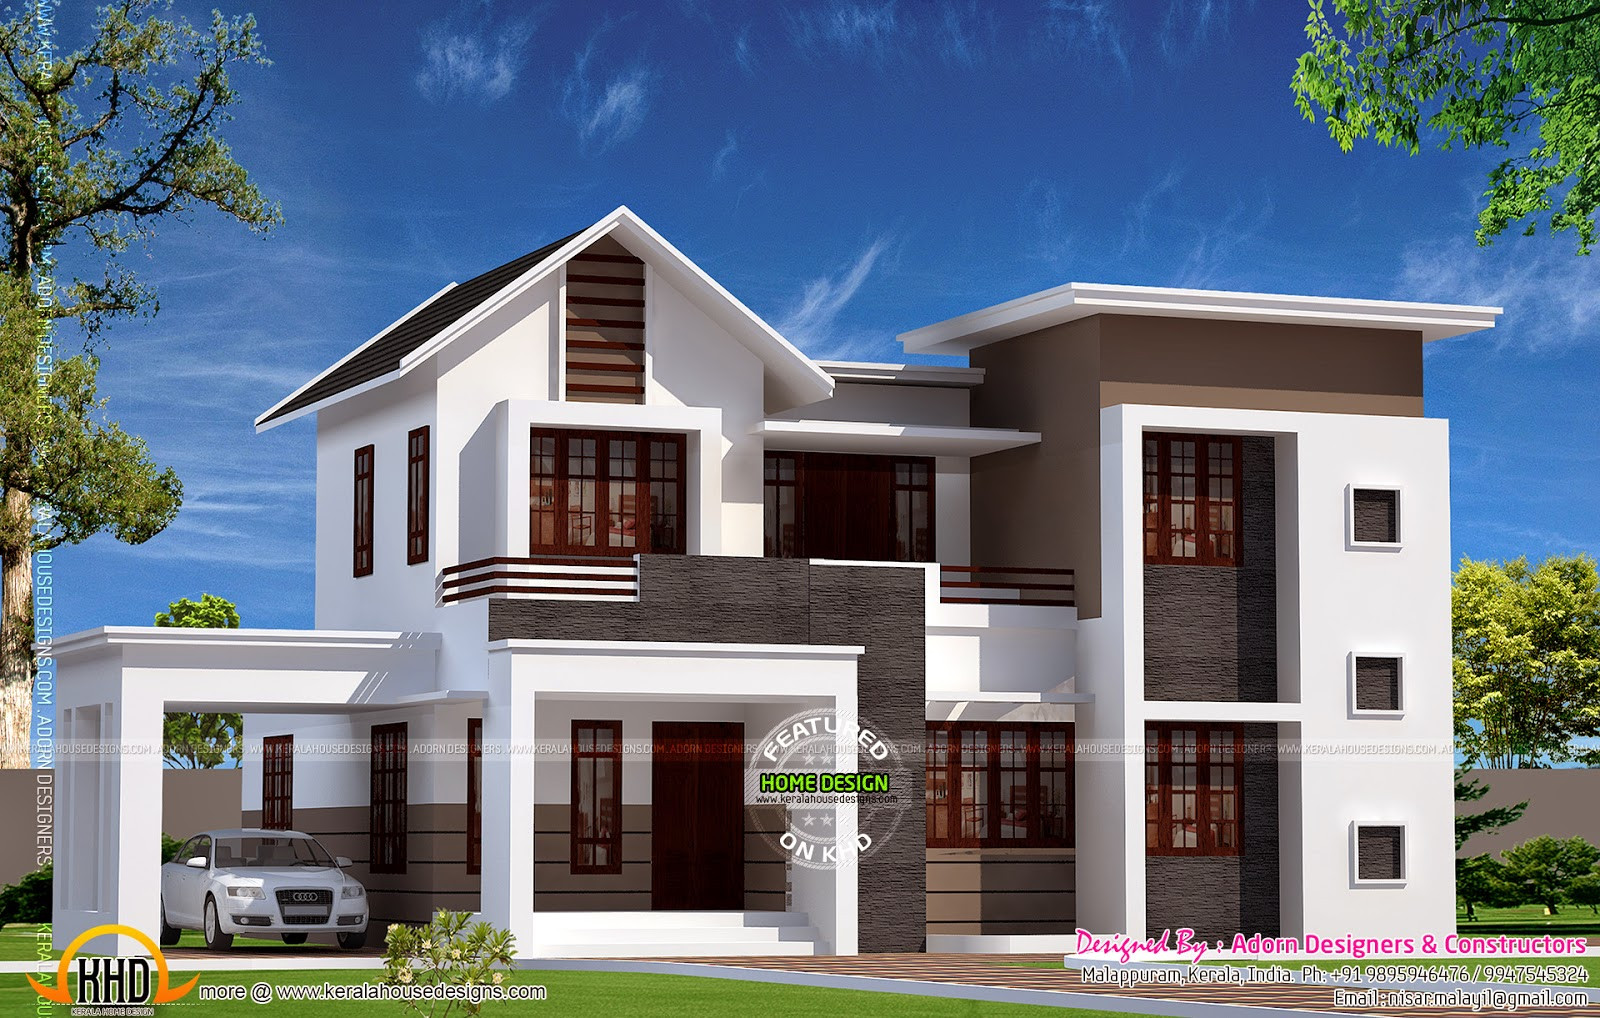 Illustrate Home Designs September Kerala Home Design Floor Plans House Plans